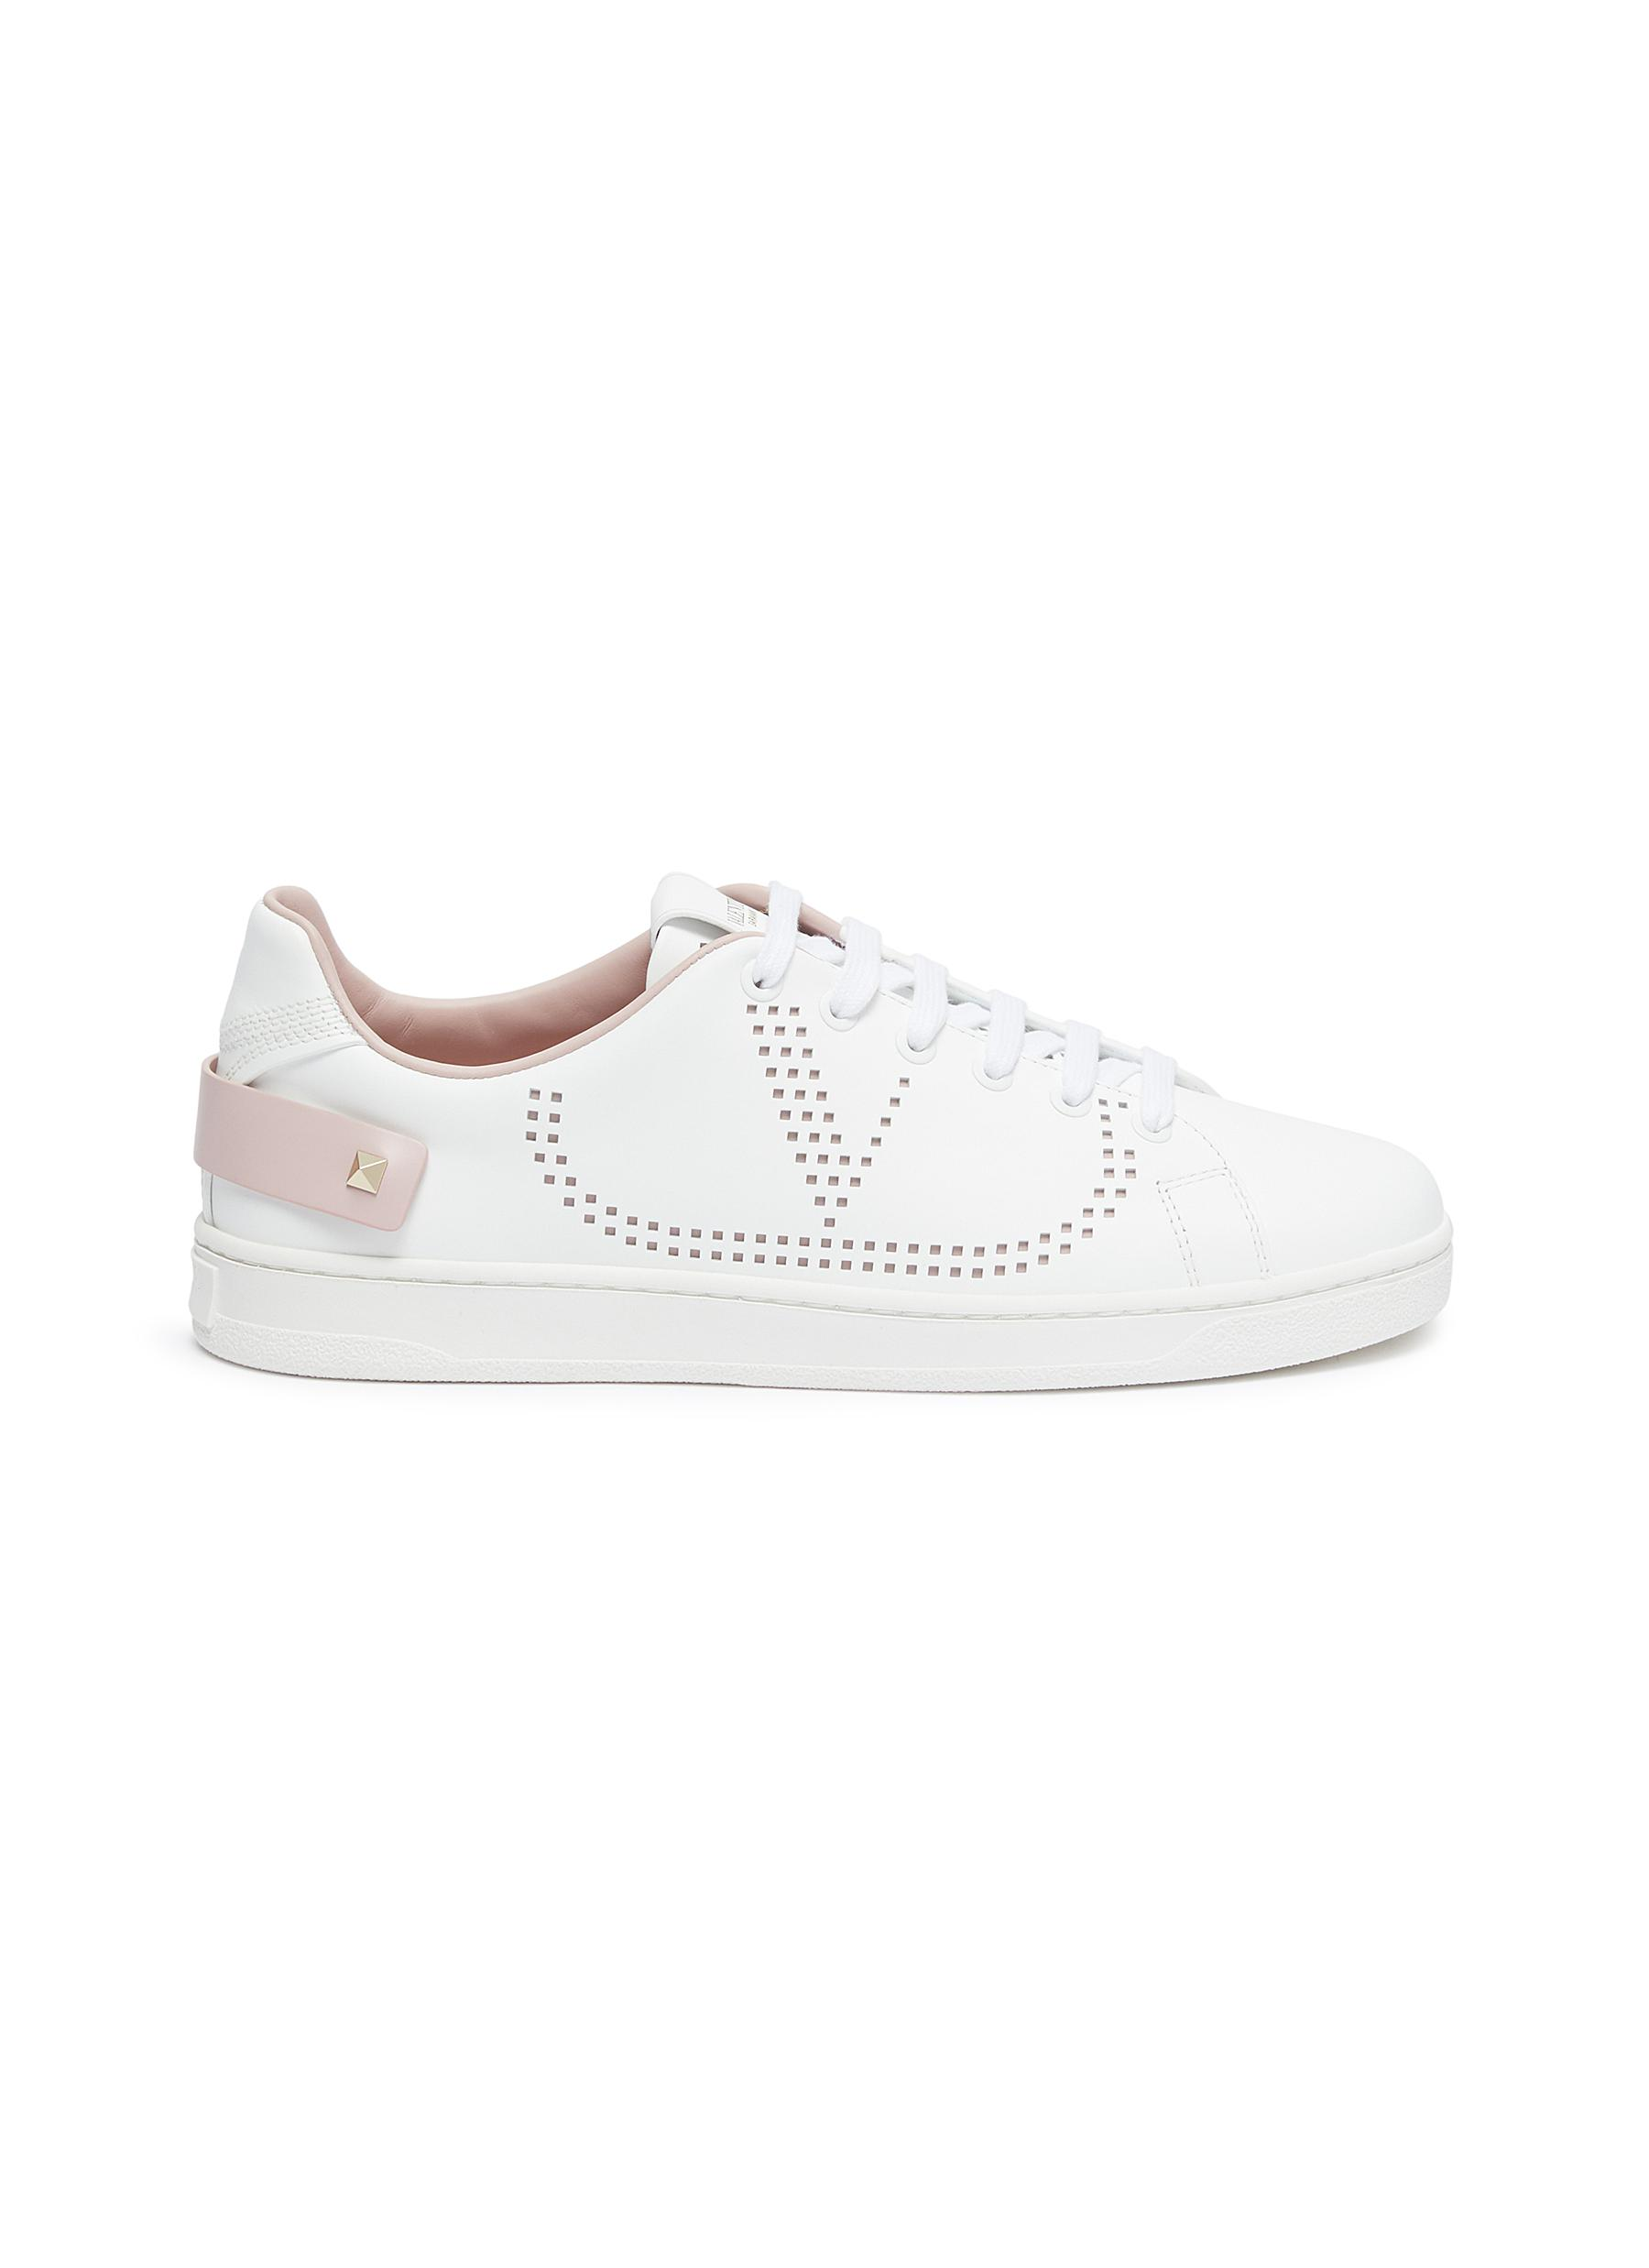 Backnet perforated VLOGO leather sneakers by Valentino